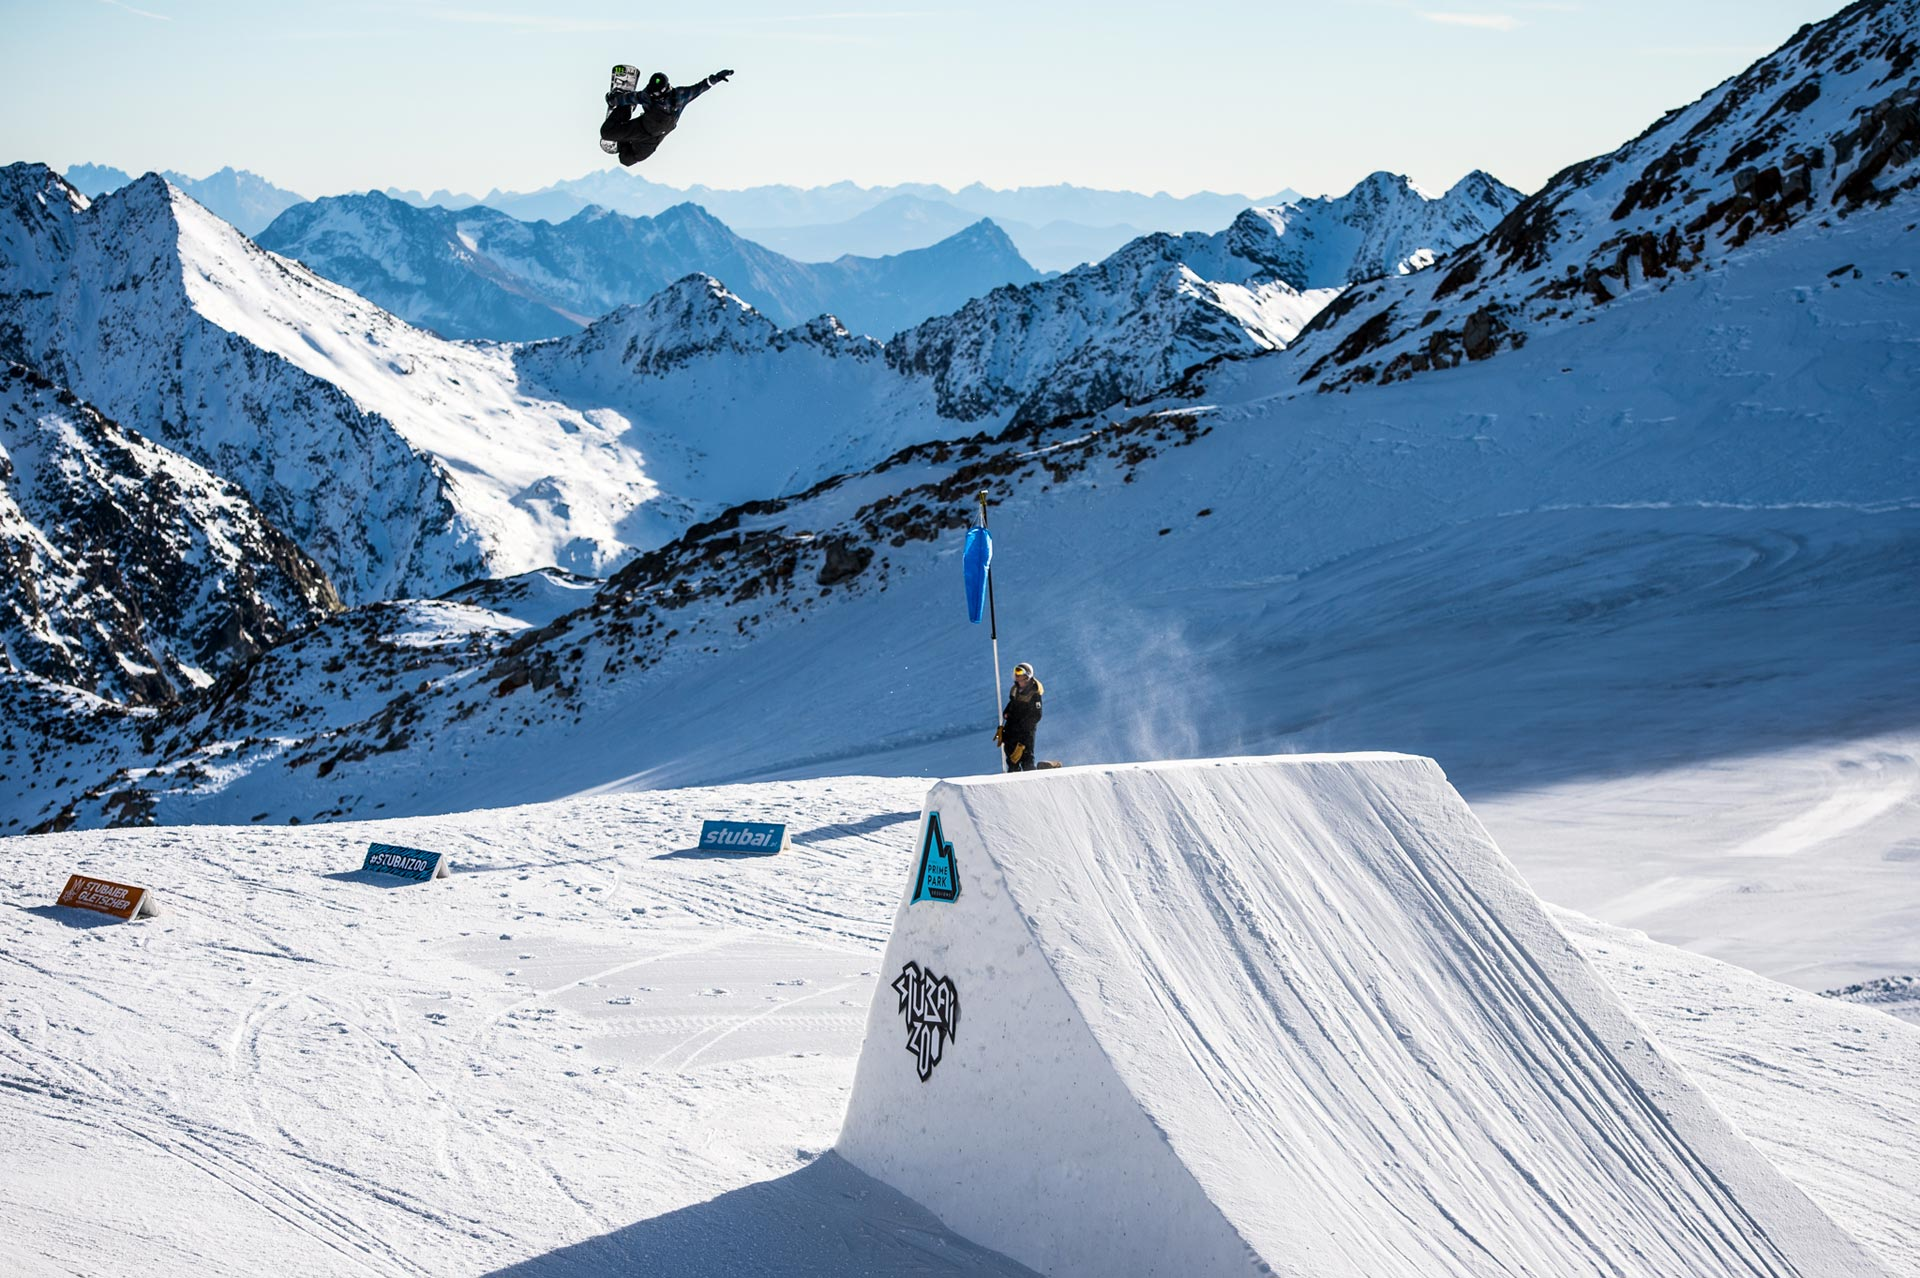 Alek Østreng am Prime Park Sessions Kicker in der Saison 15/16 - Foto: Pally Learmond